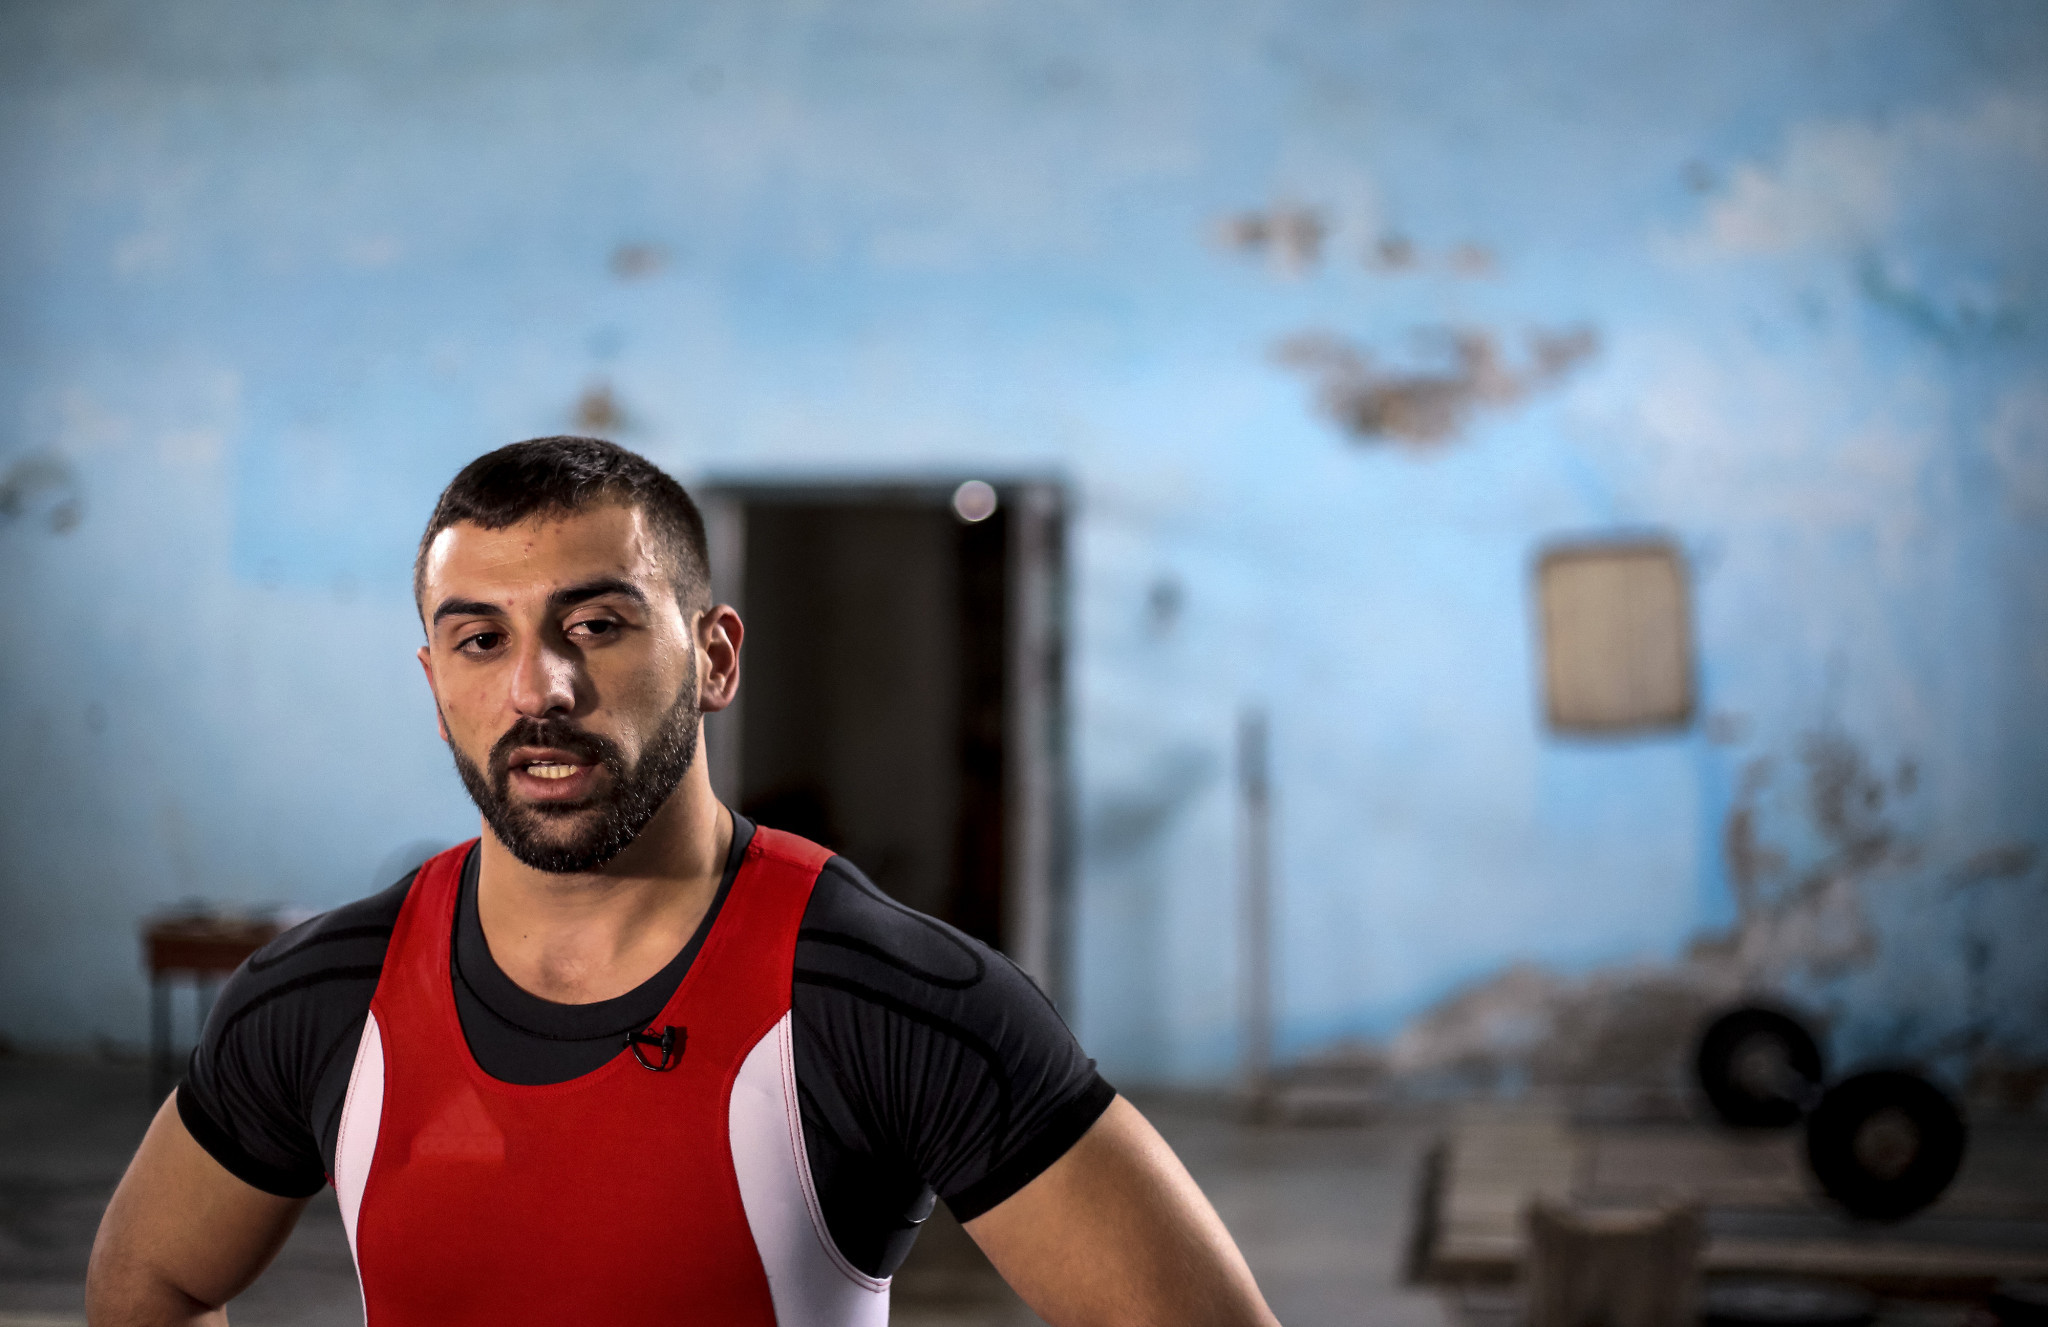 Albania's Daniel Godelli is unable to compete at the 2017 IWF World Championships in Anaheim after being denied a visa to enter the United States ©Getty Images